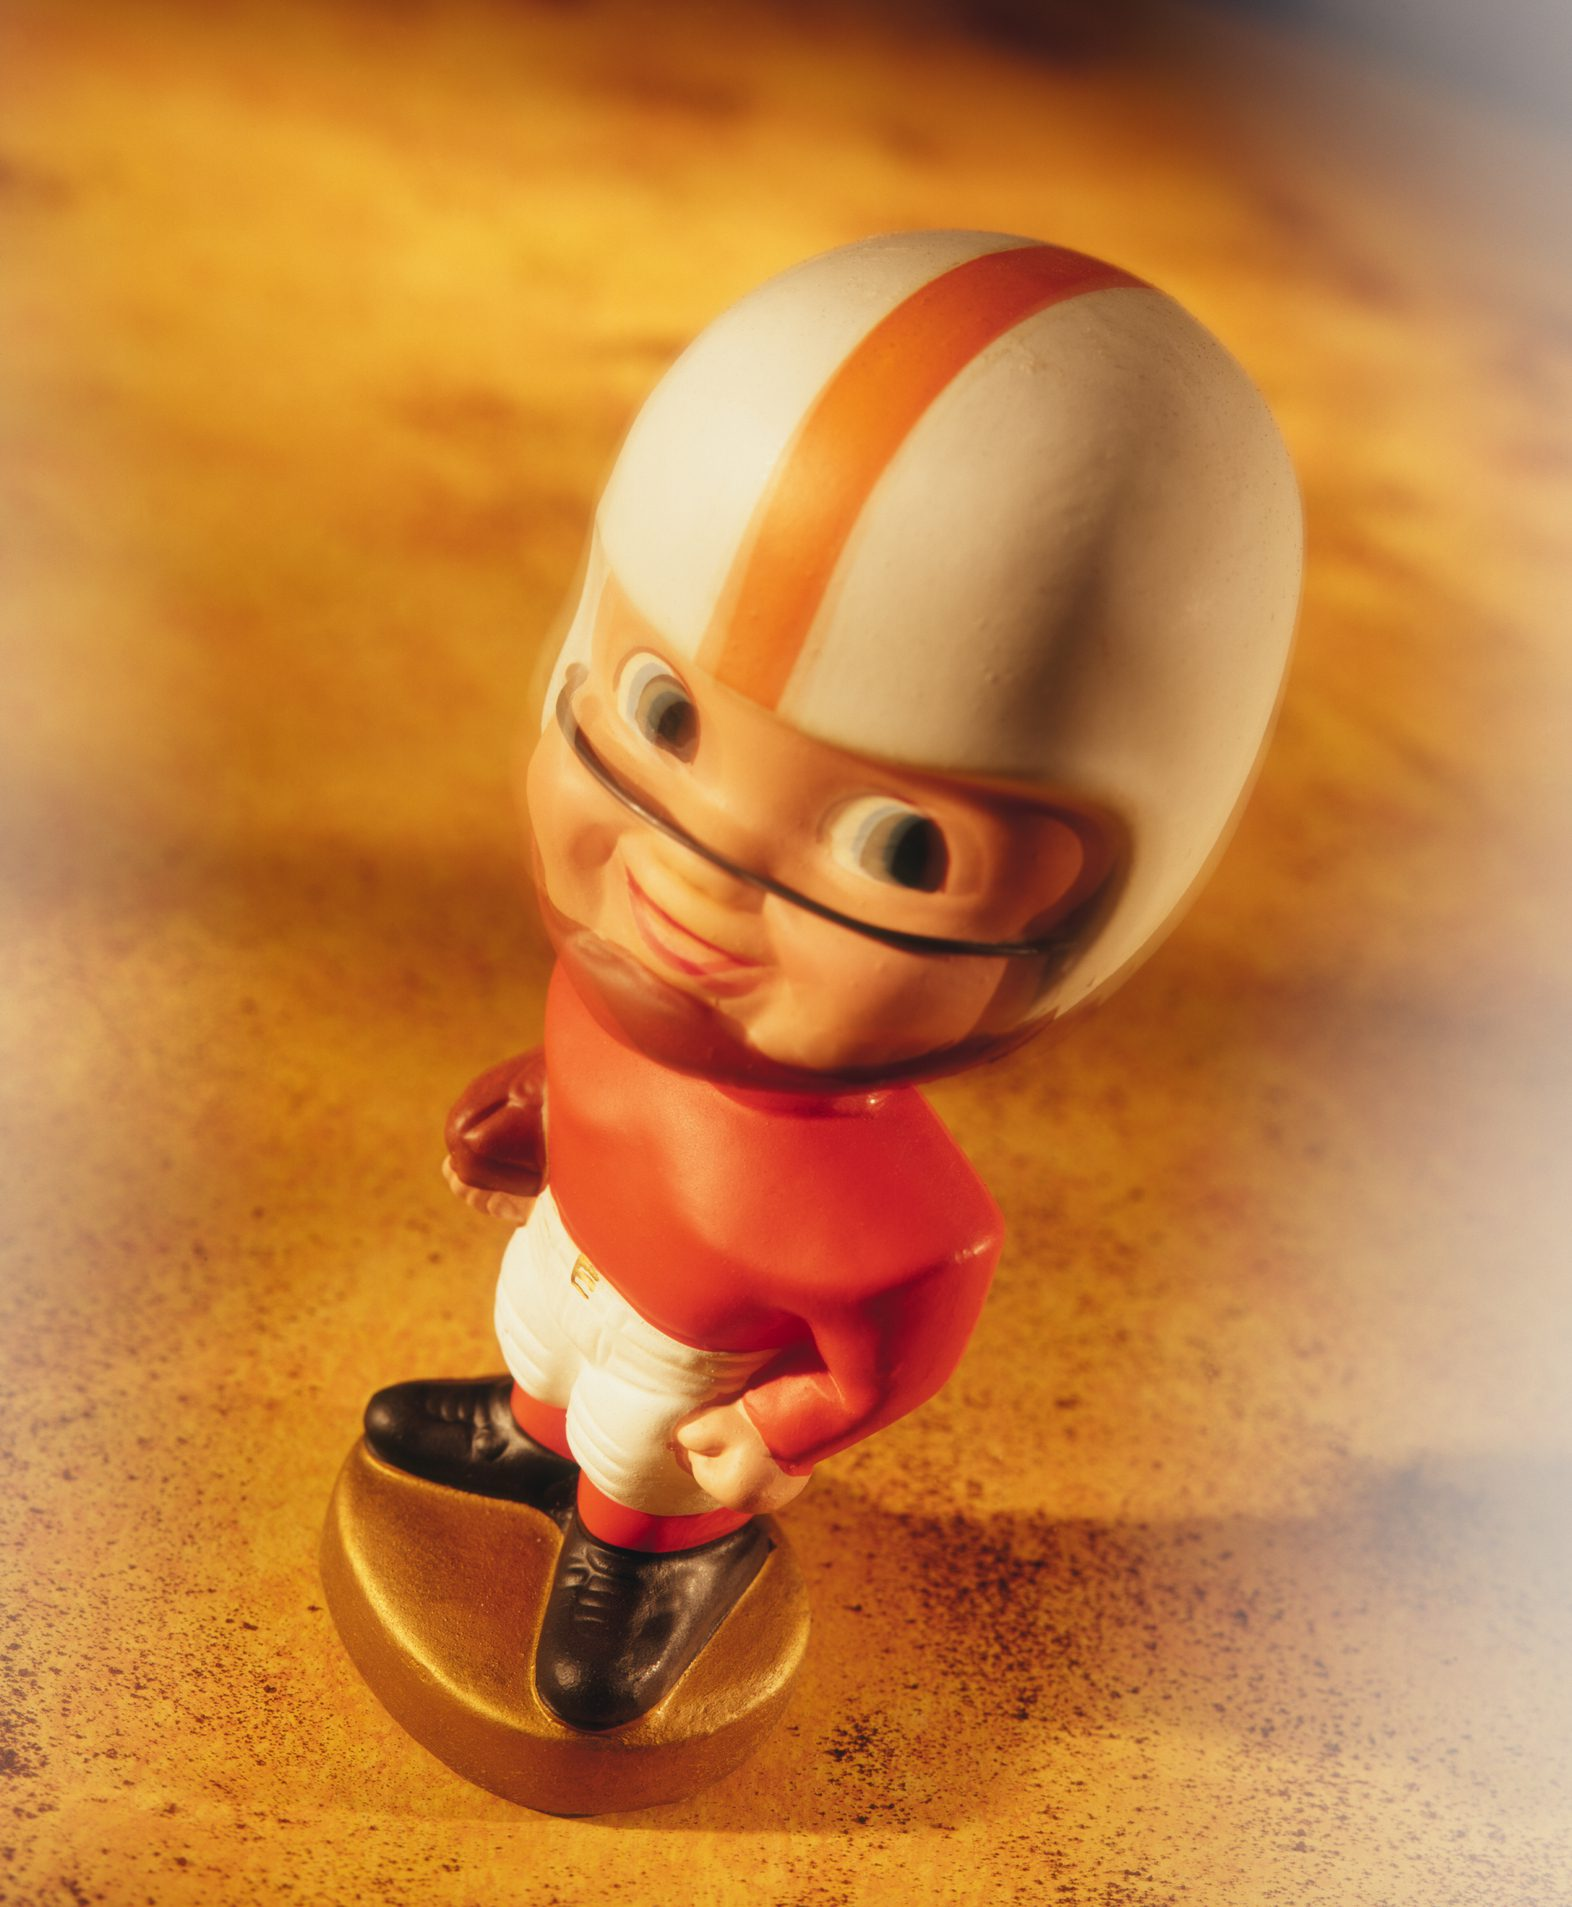 Vintage football player bobblehead